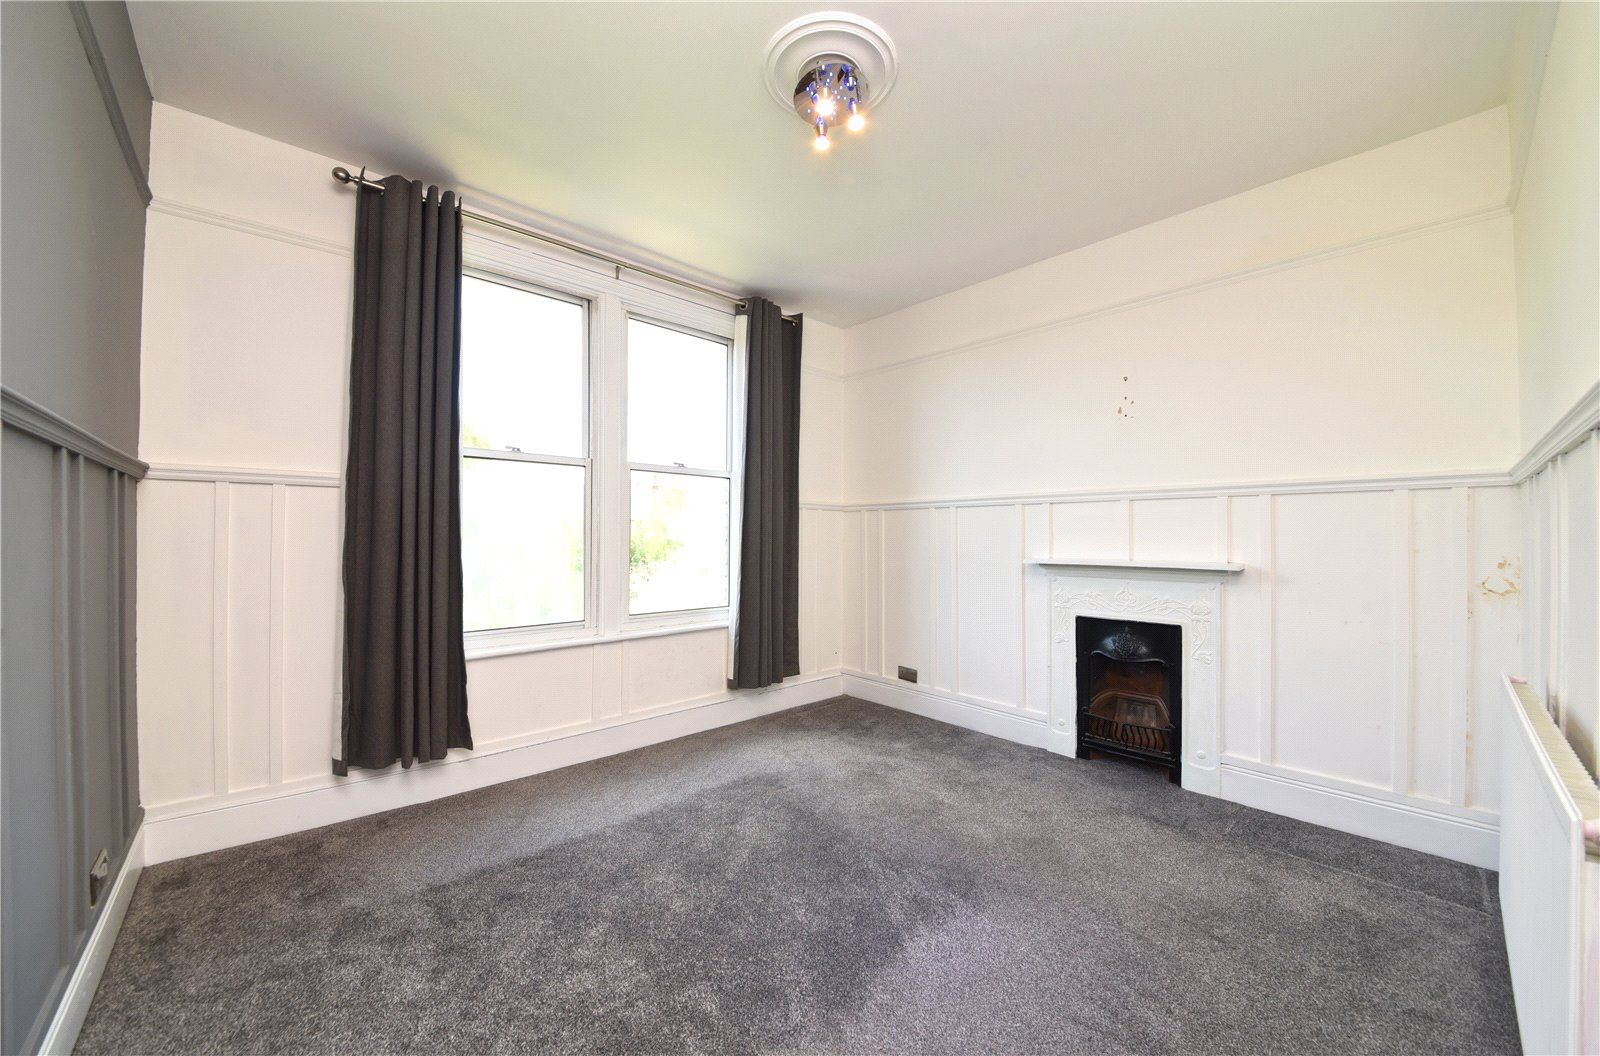 4 bed house for sale in Finchley, N3 2AR 8